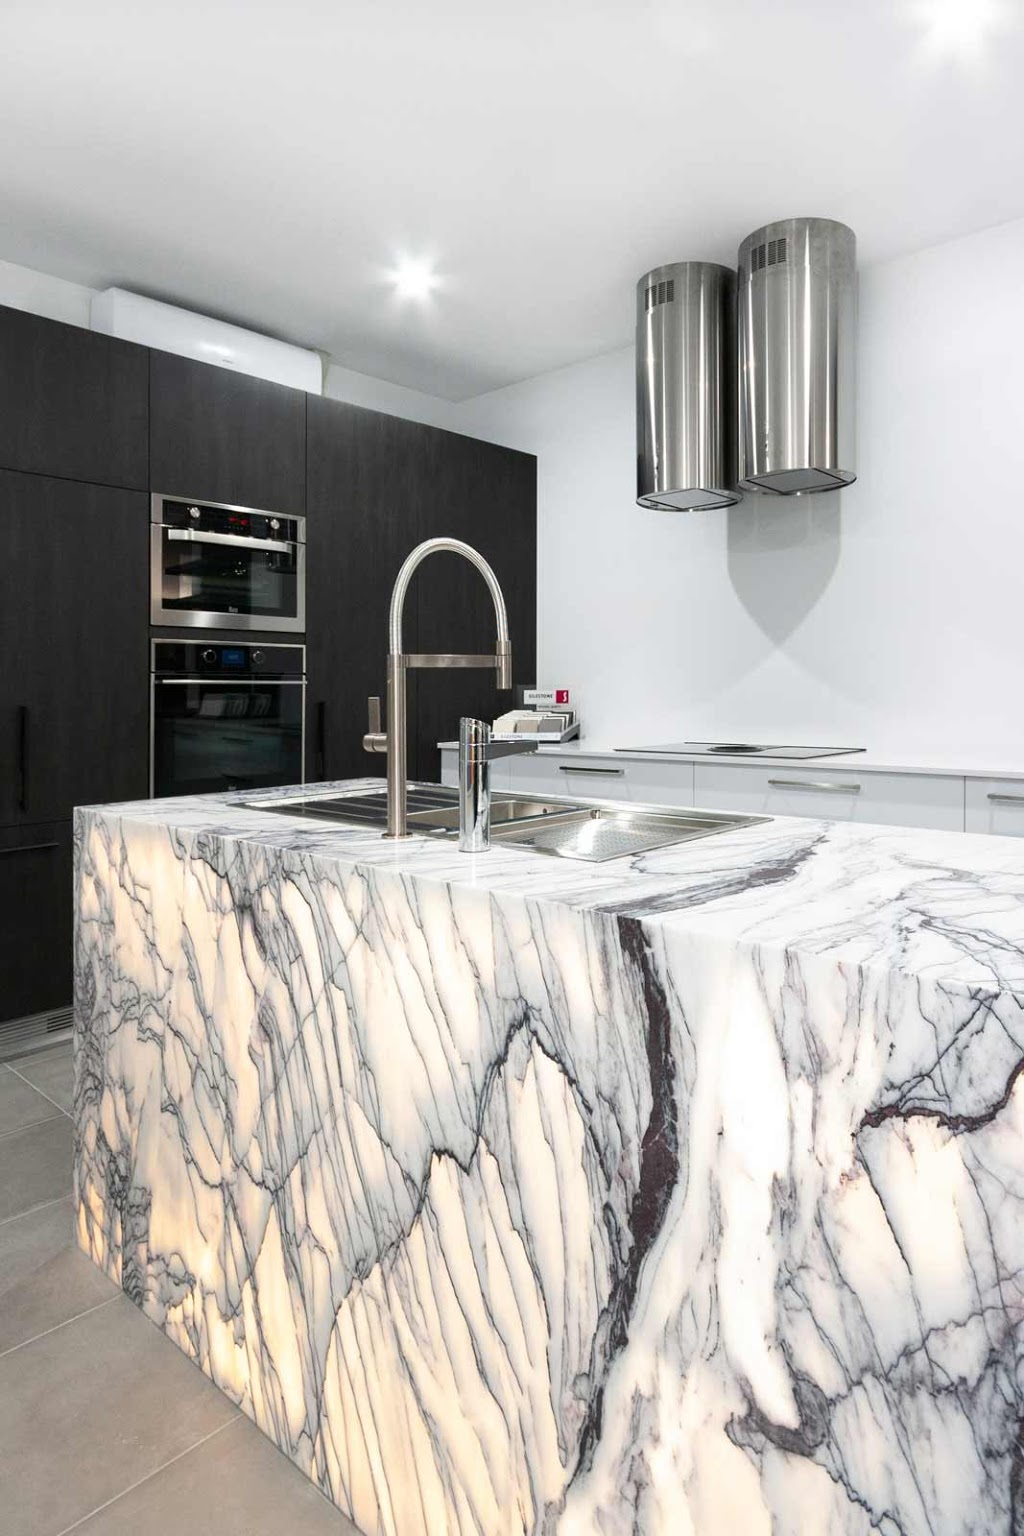 Kitchens Drummoyne Premier Kitchens Australia Home Goods Store 144 Victoria Rd